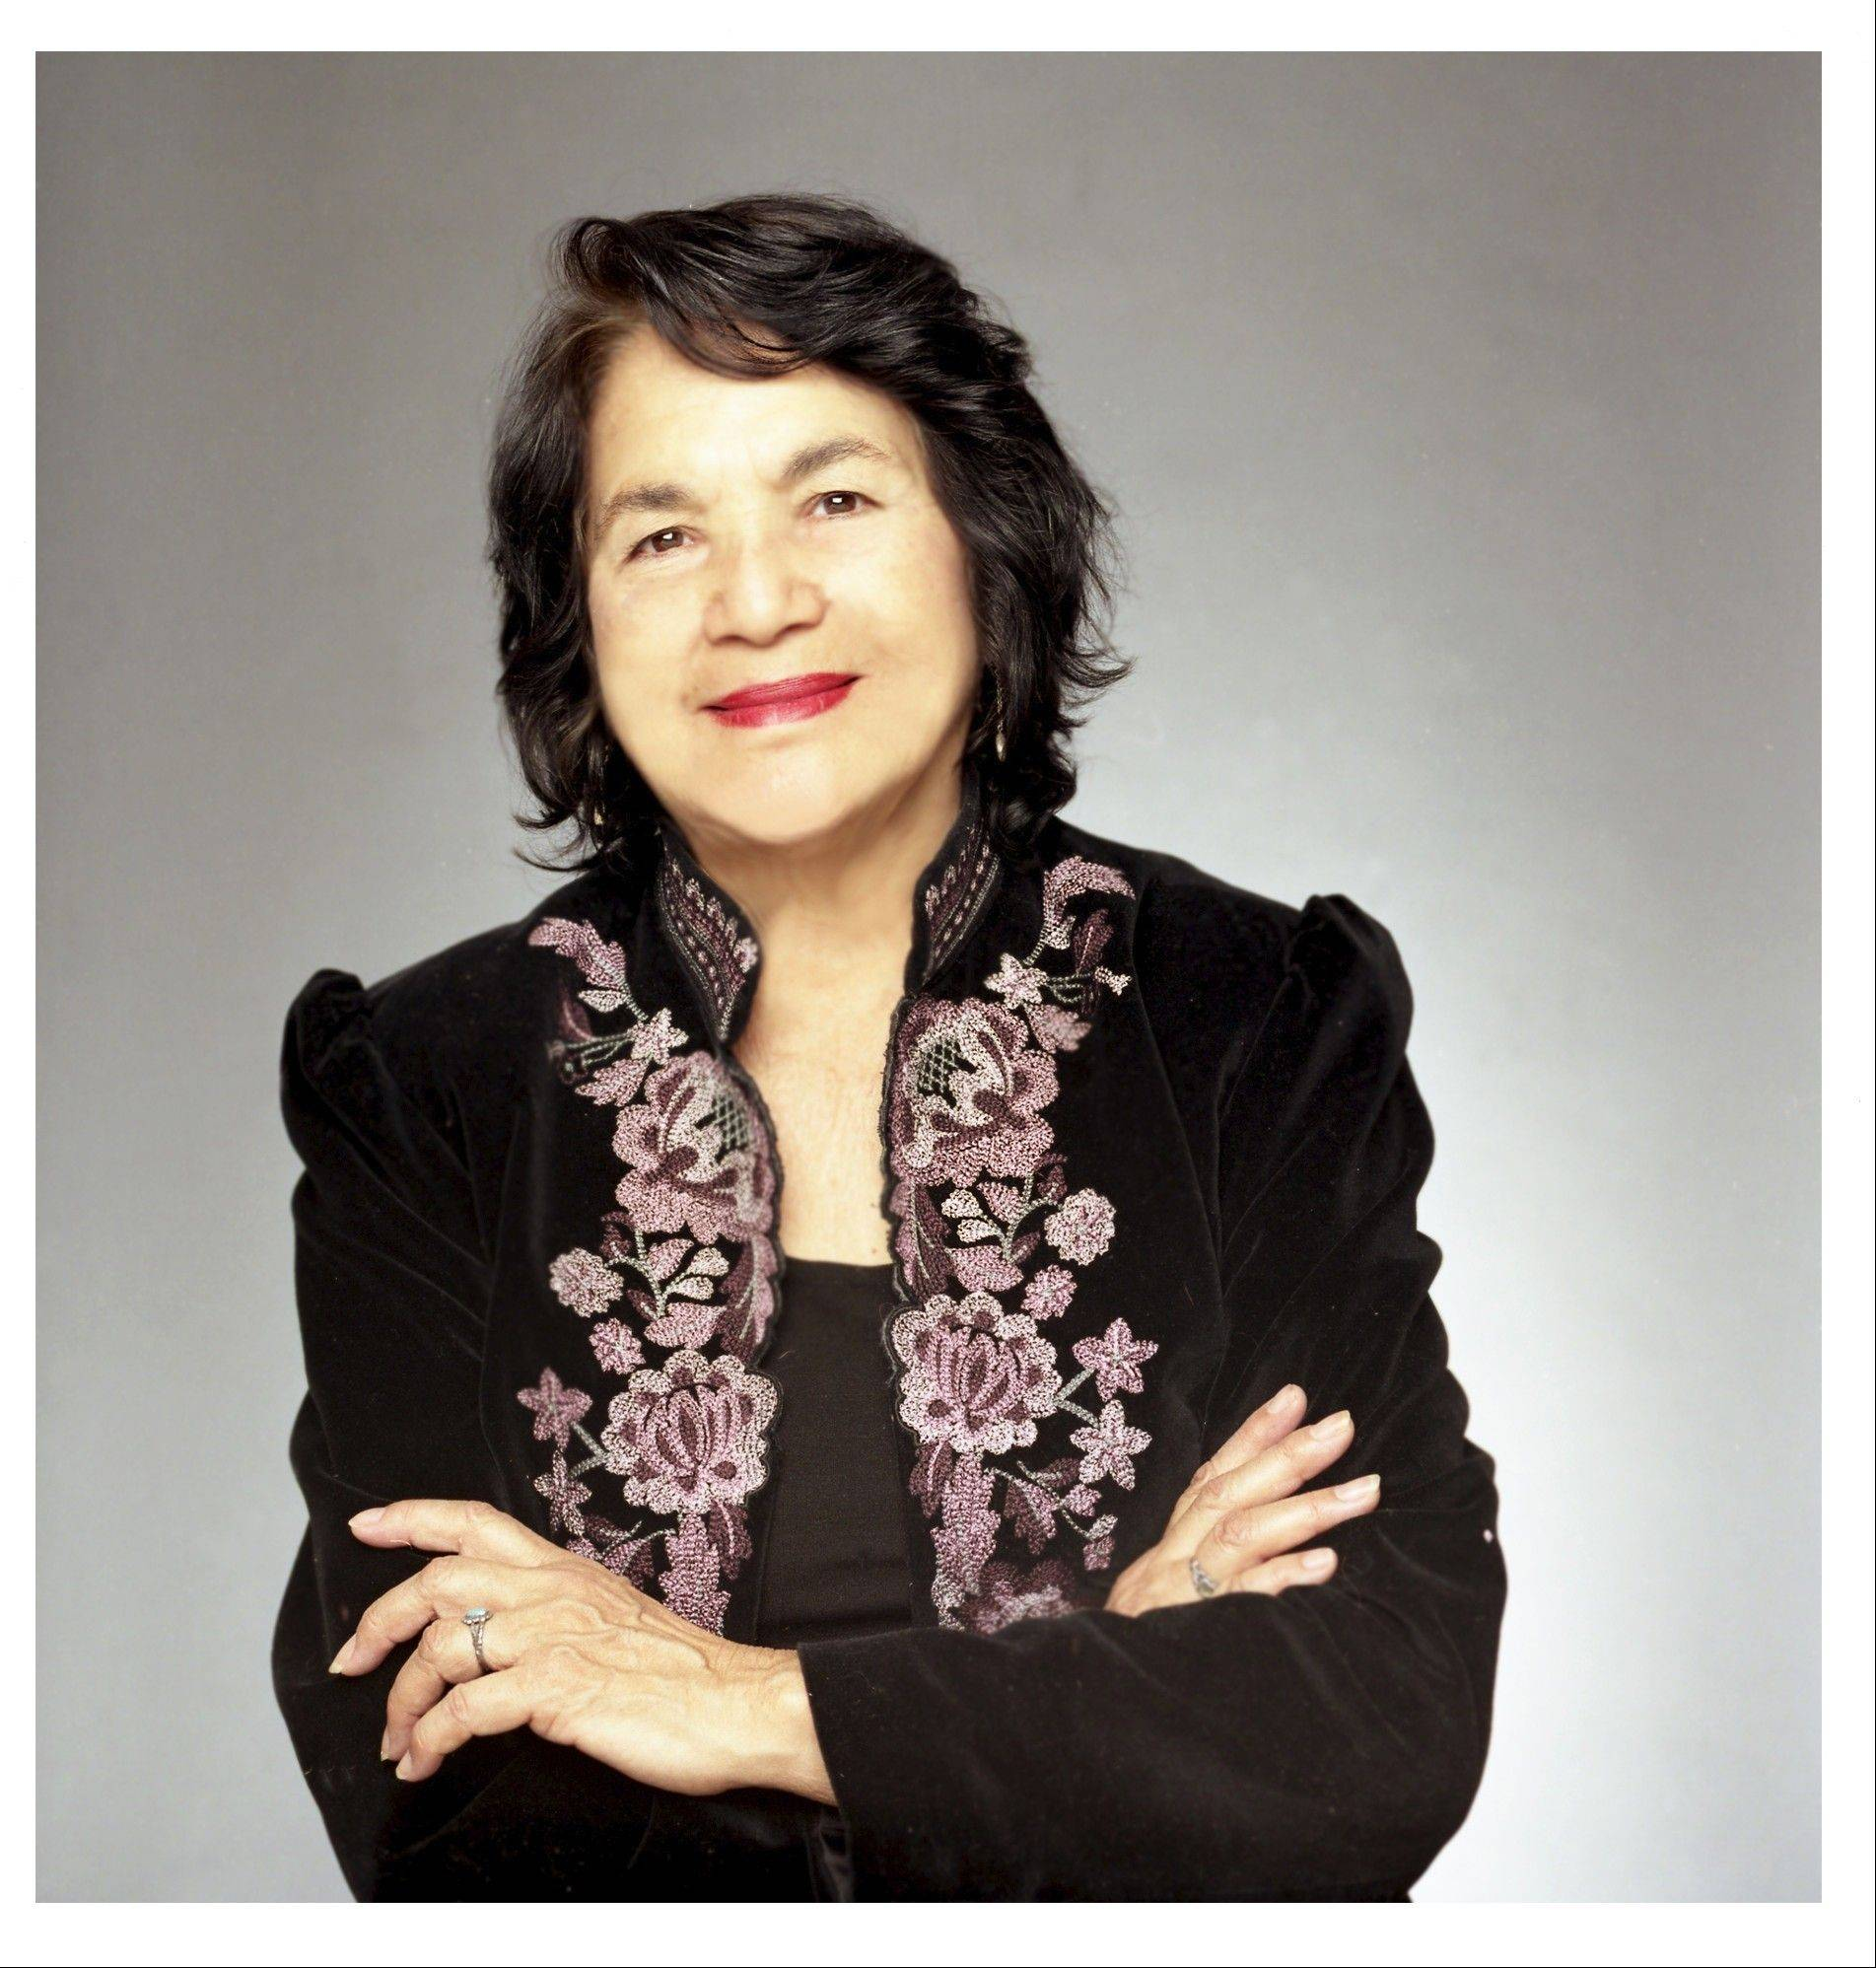 On Sept. 12, civil rights activist Delores Huerta will kick off activities for Elgin Community College's celebration of Latino Heritage Month.